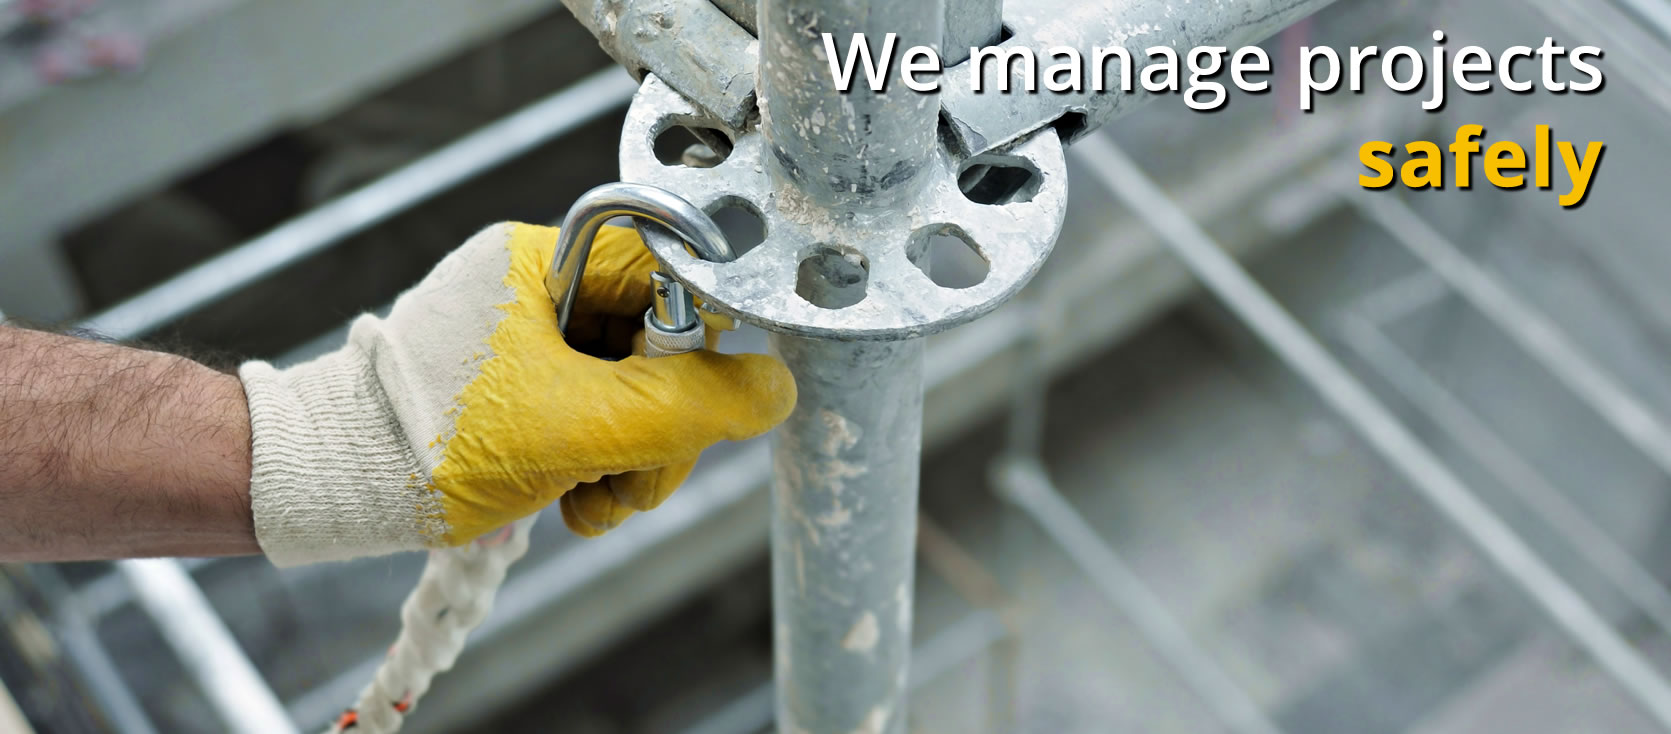 We manage projects <b>Safely</b>